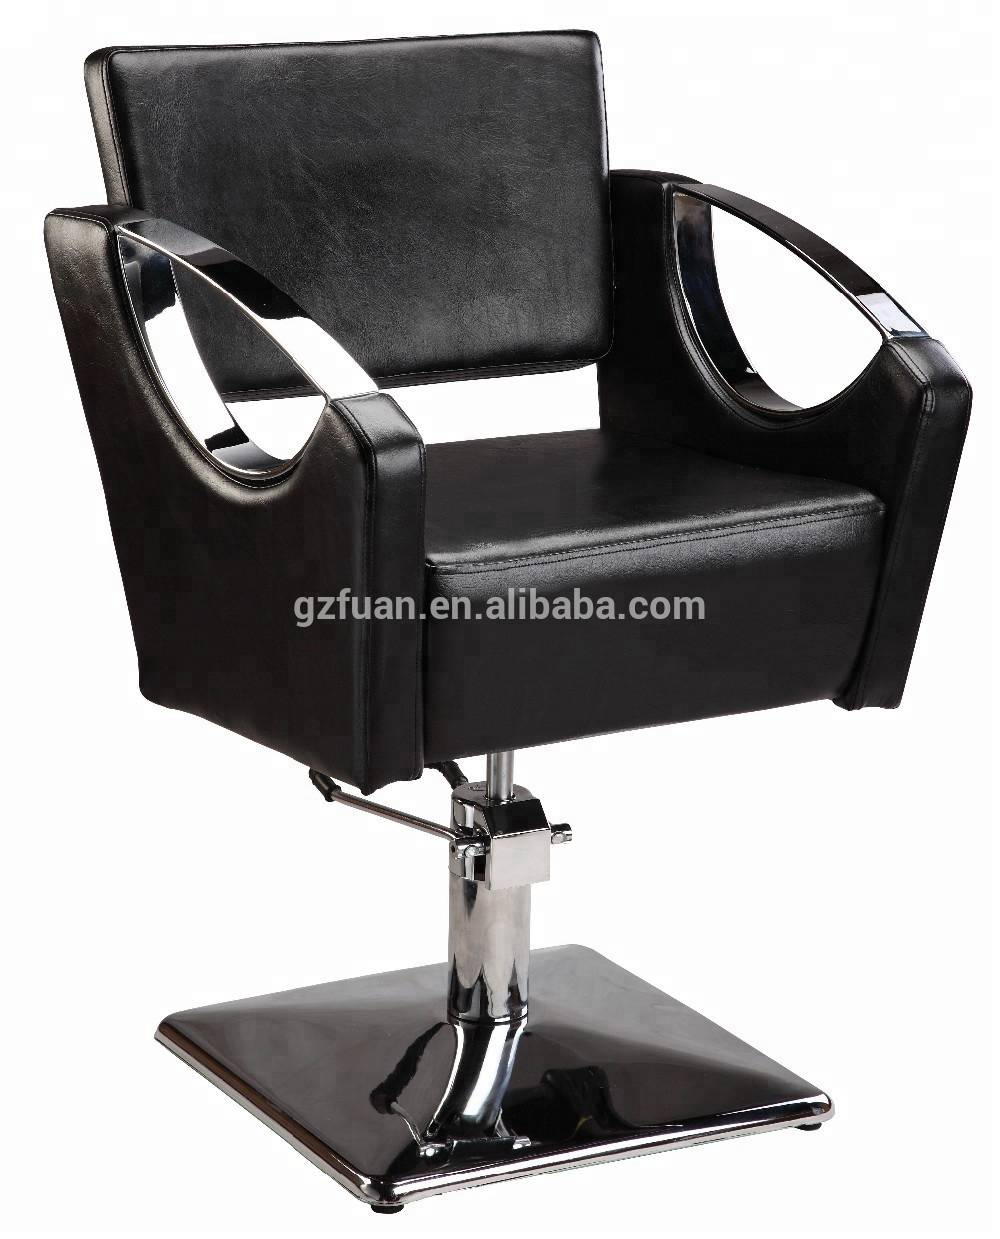 Hot sale synthetic leather hairdresser salon furniture cheap barber chair hair salon styling chair